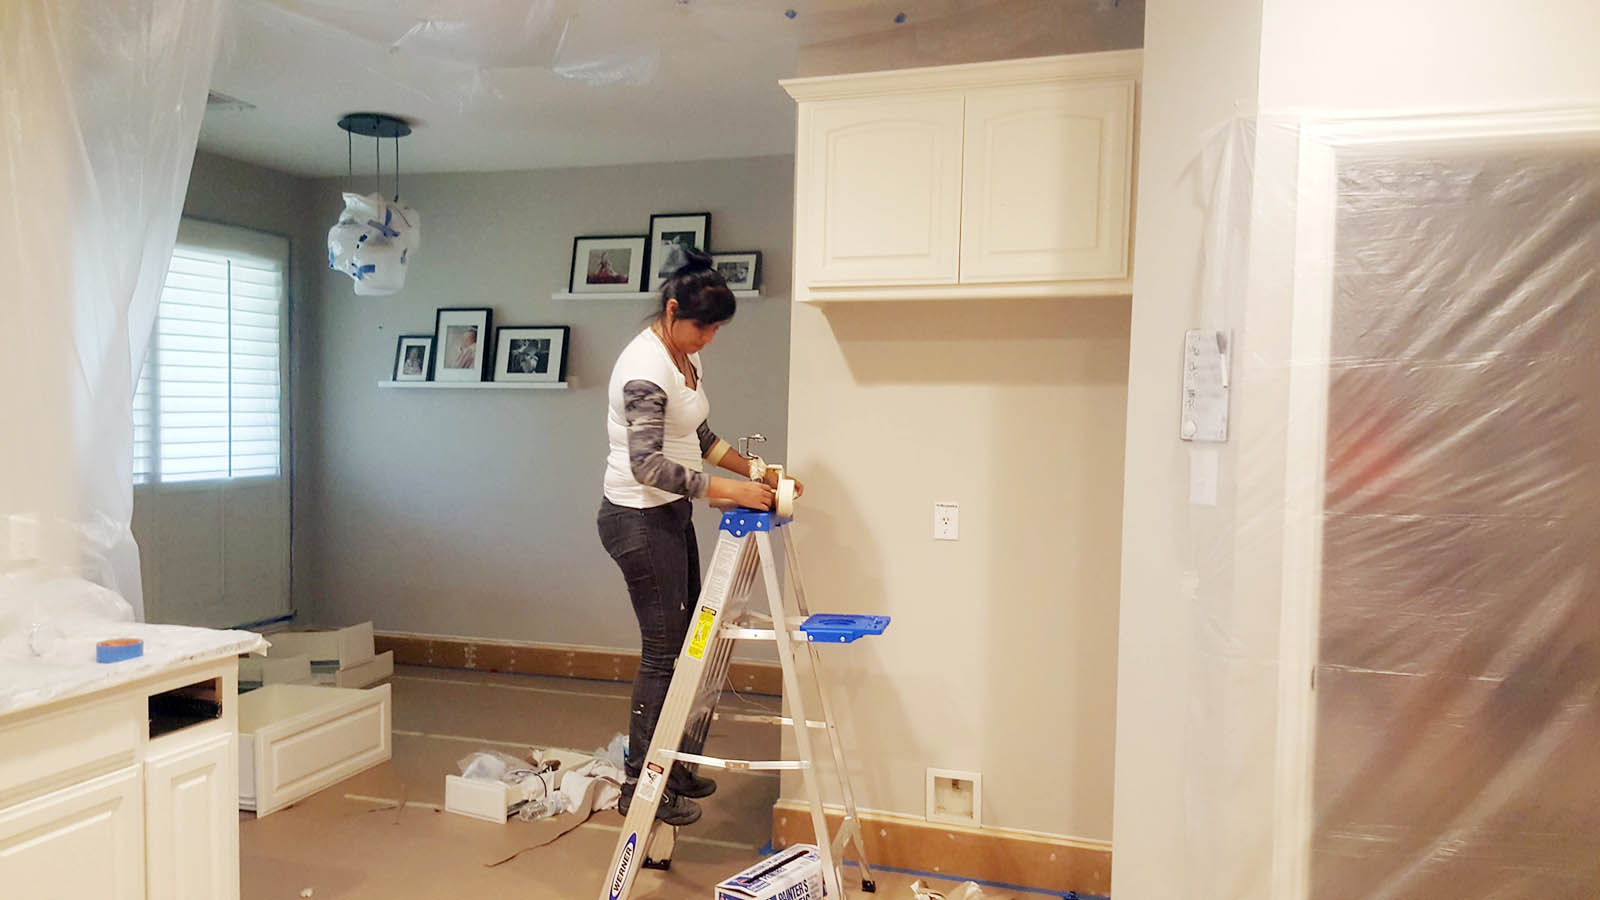 Kyle-San Marcos TX Professional Painting Contractors-We offer Residential & Commercial Painting, Interior Painting, Exterior Painting, Primer Painting, Industrial Painting, Professional Painters, Institutional Painters, and more.